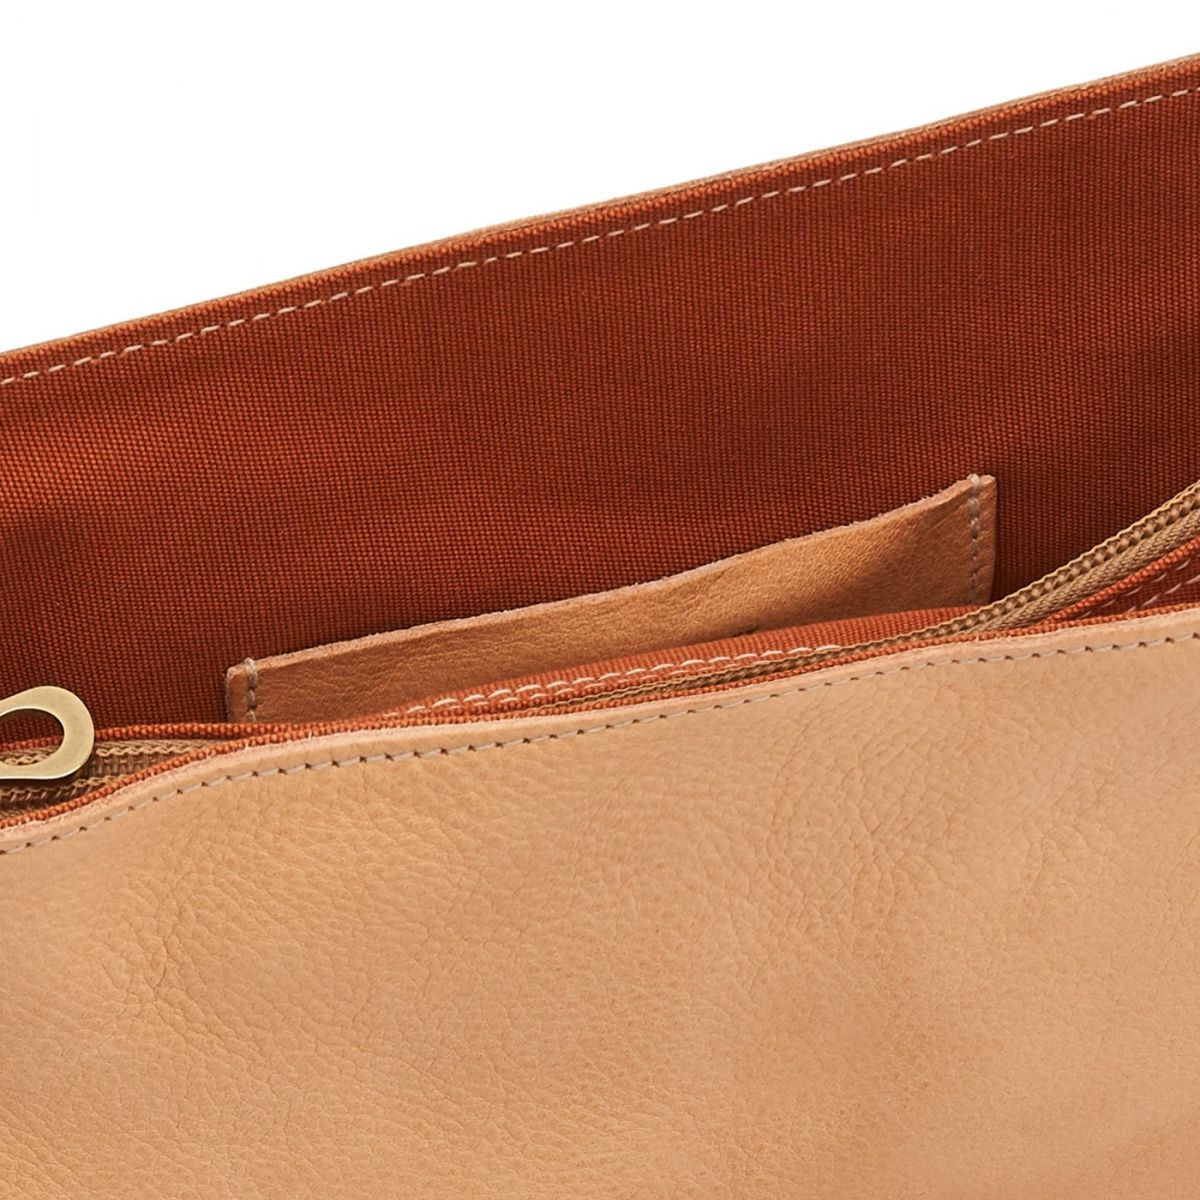 Women's Crossbody Bag in Cowhide Double Leather BCR028 color Natural | Details